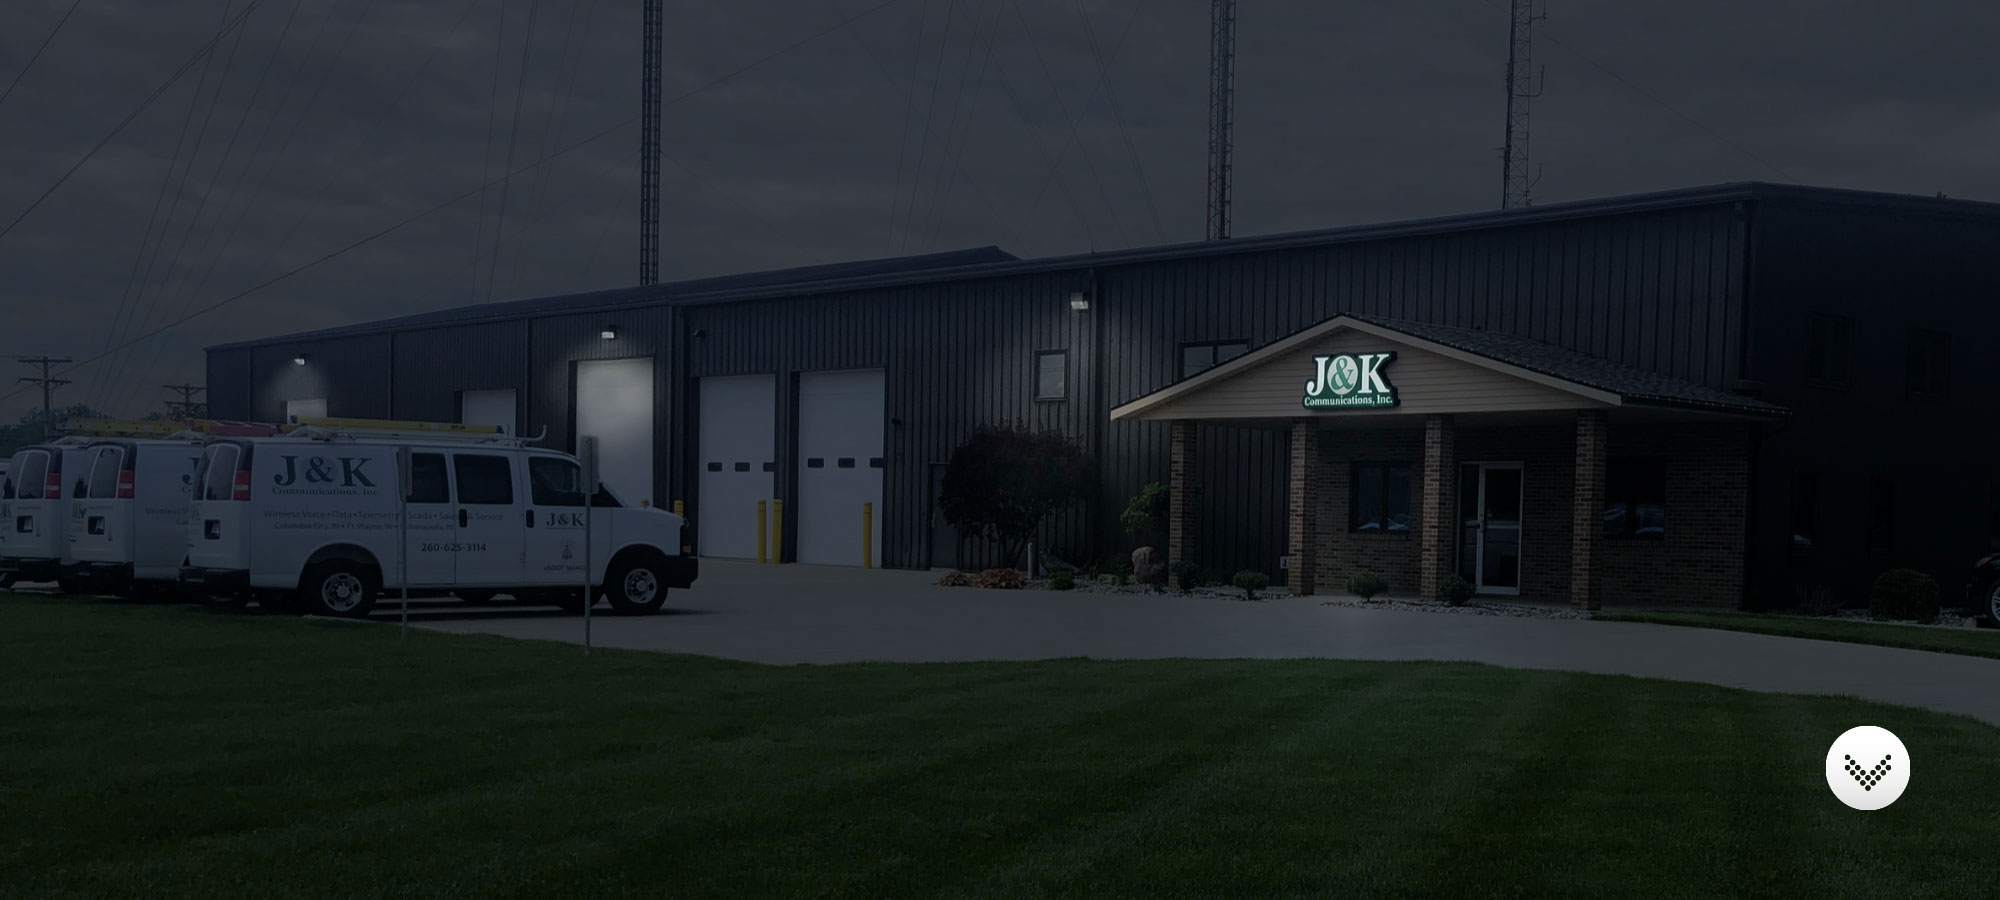 J&K communications, Inc. after hours for 24/7/365 emergency service.